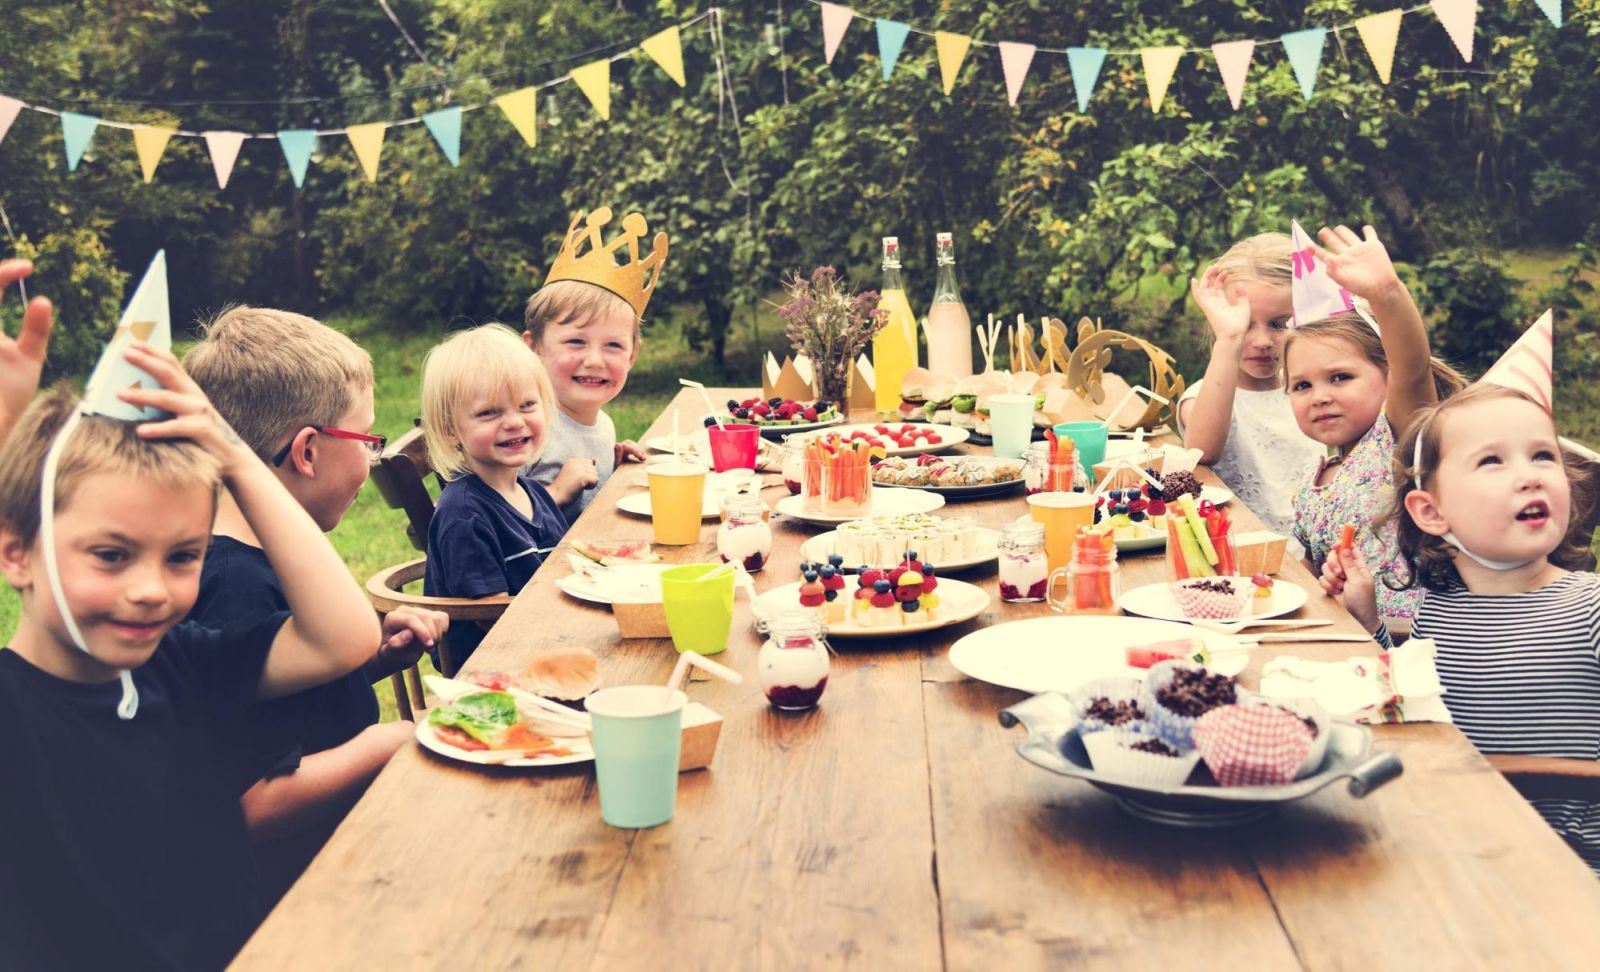 Garden Centre Marketing Idea - Birthday Parties